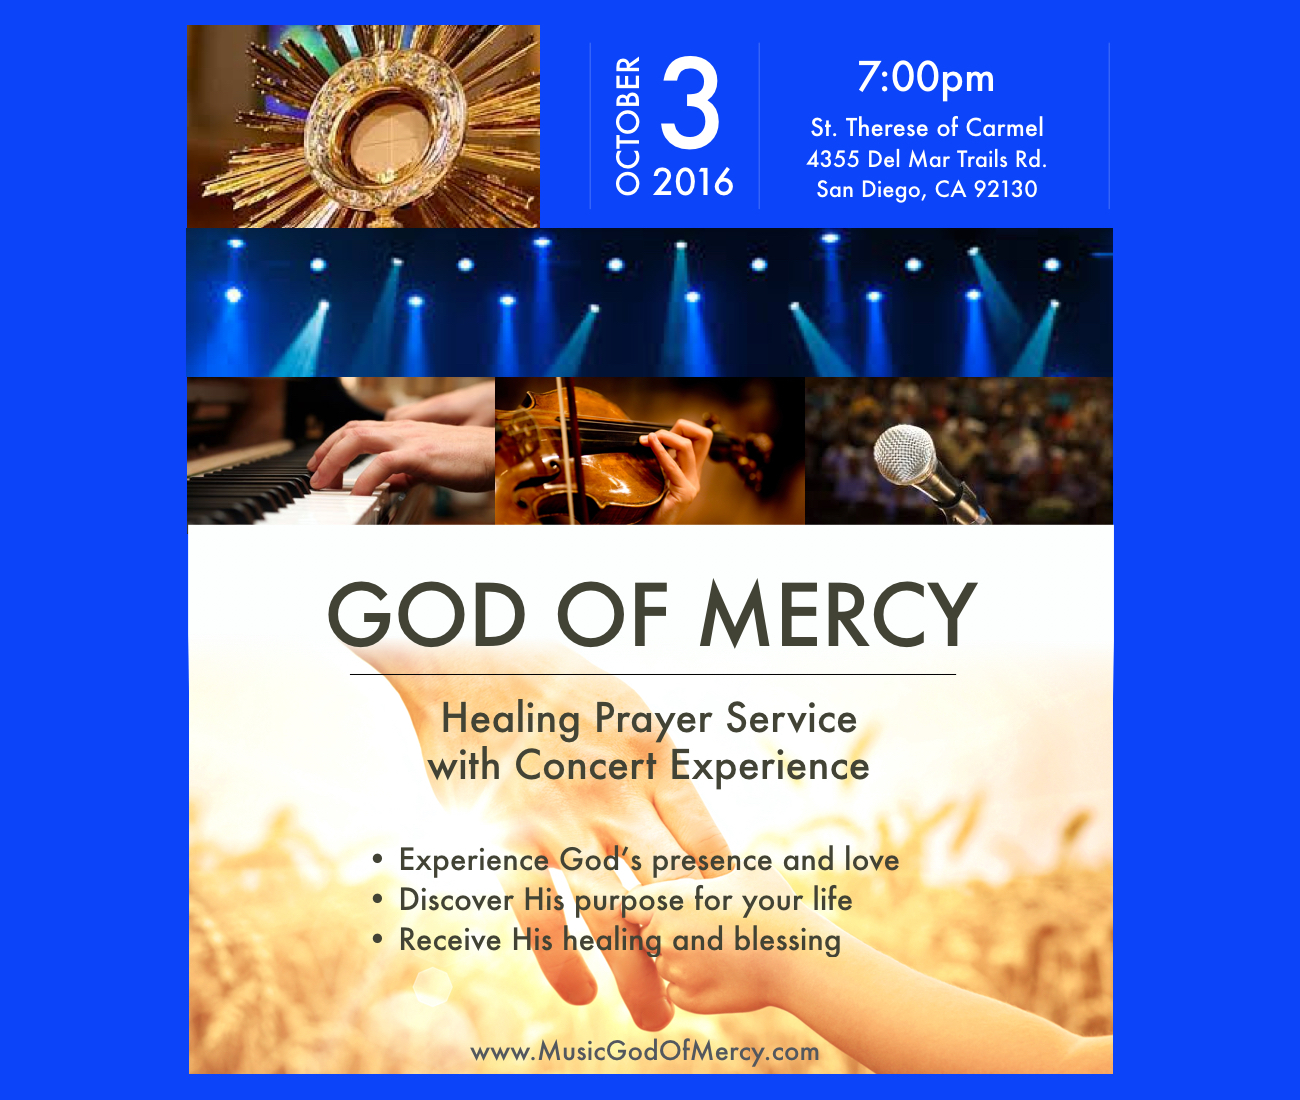 God of Mercy - Prayer and Music Experience (Oct.3, 7pm, Saint Therese of Carmel Church, San Diego,CA